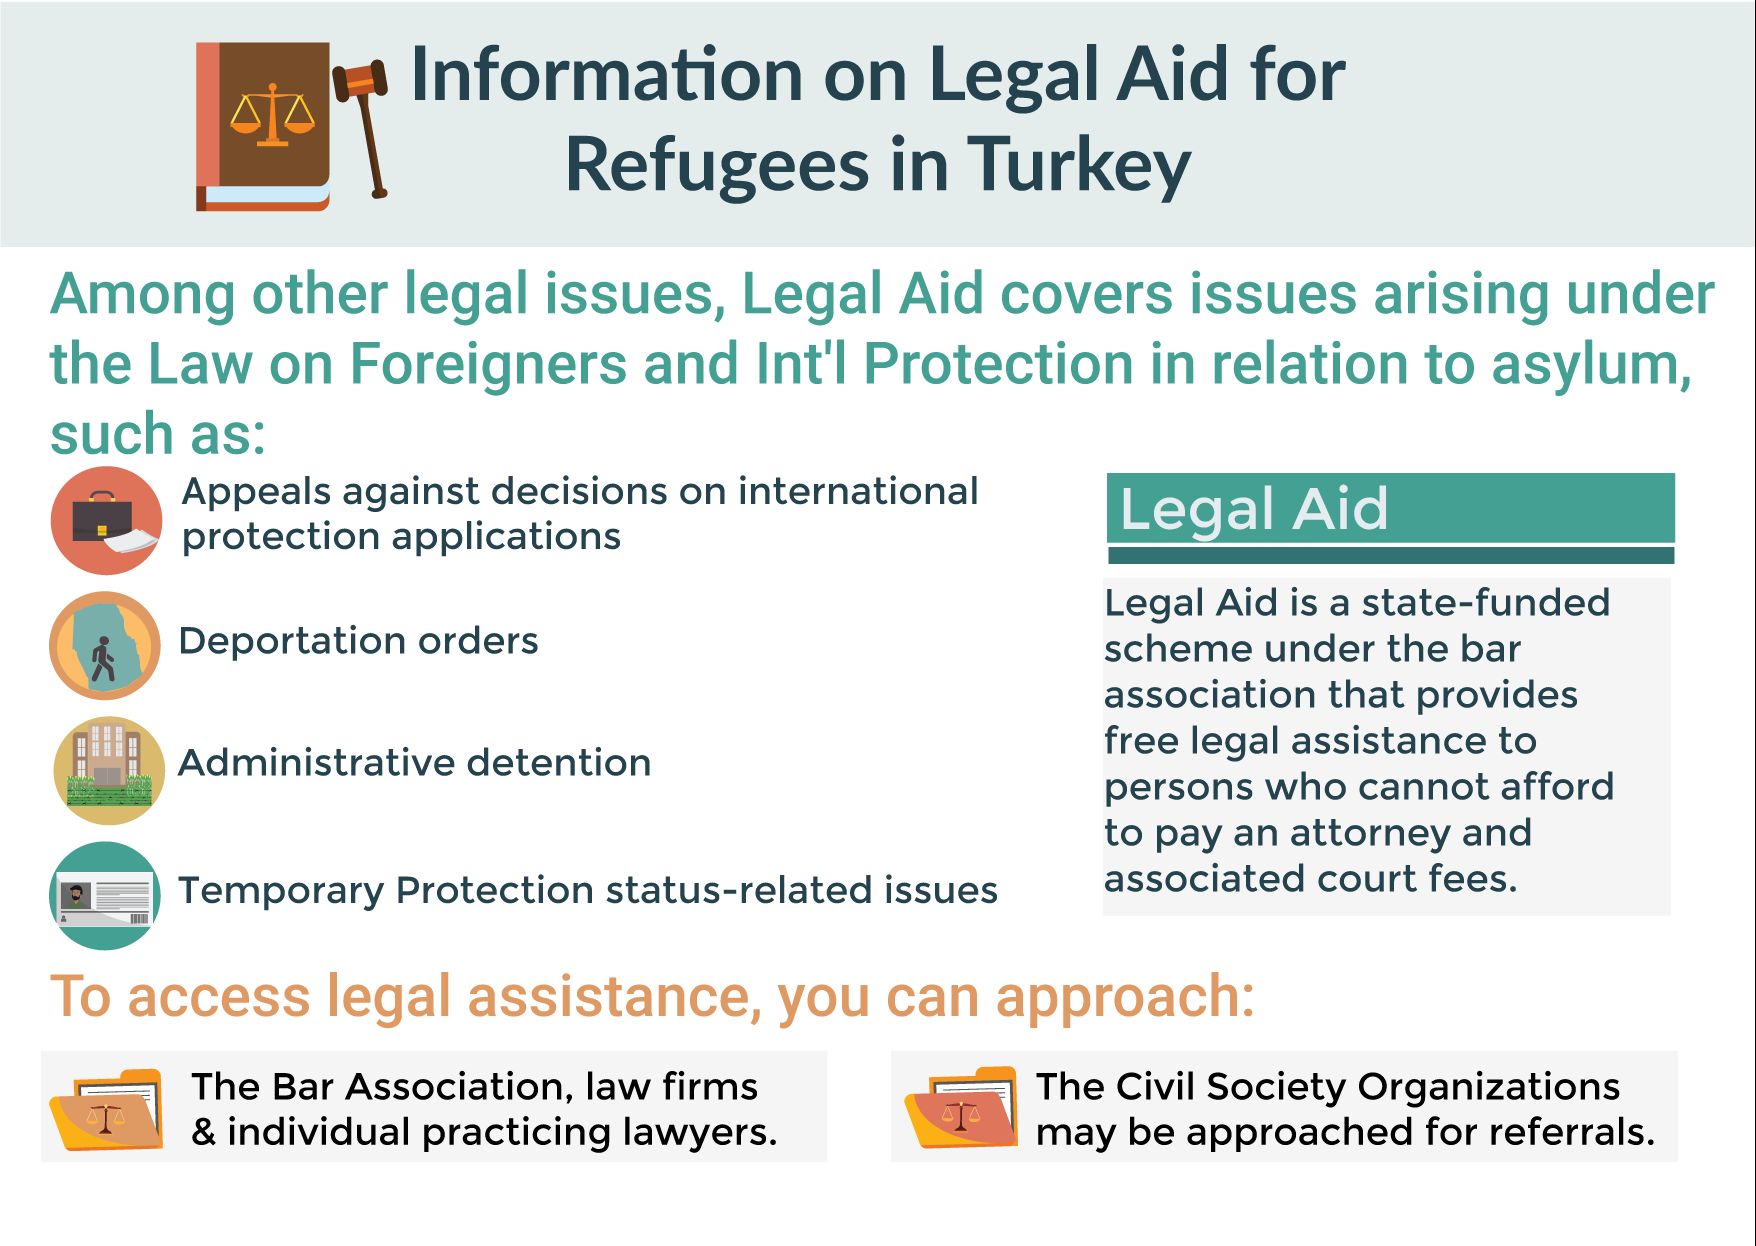 Information on Legal Aid for Refugees in Turkey legal issues, Legal Aid (Adli Yardım) asylum Appeals against decisions on international protection applications Deportation orders Administrative detention Legal Aid is a state-funded scheme under the bar association that provides free legal assistance to persons who cannot afford to pay an attorney and associated court fees. The Bar Association Civil Society Organizations may be approached for referrals